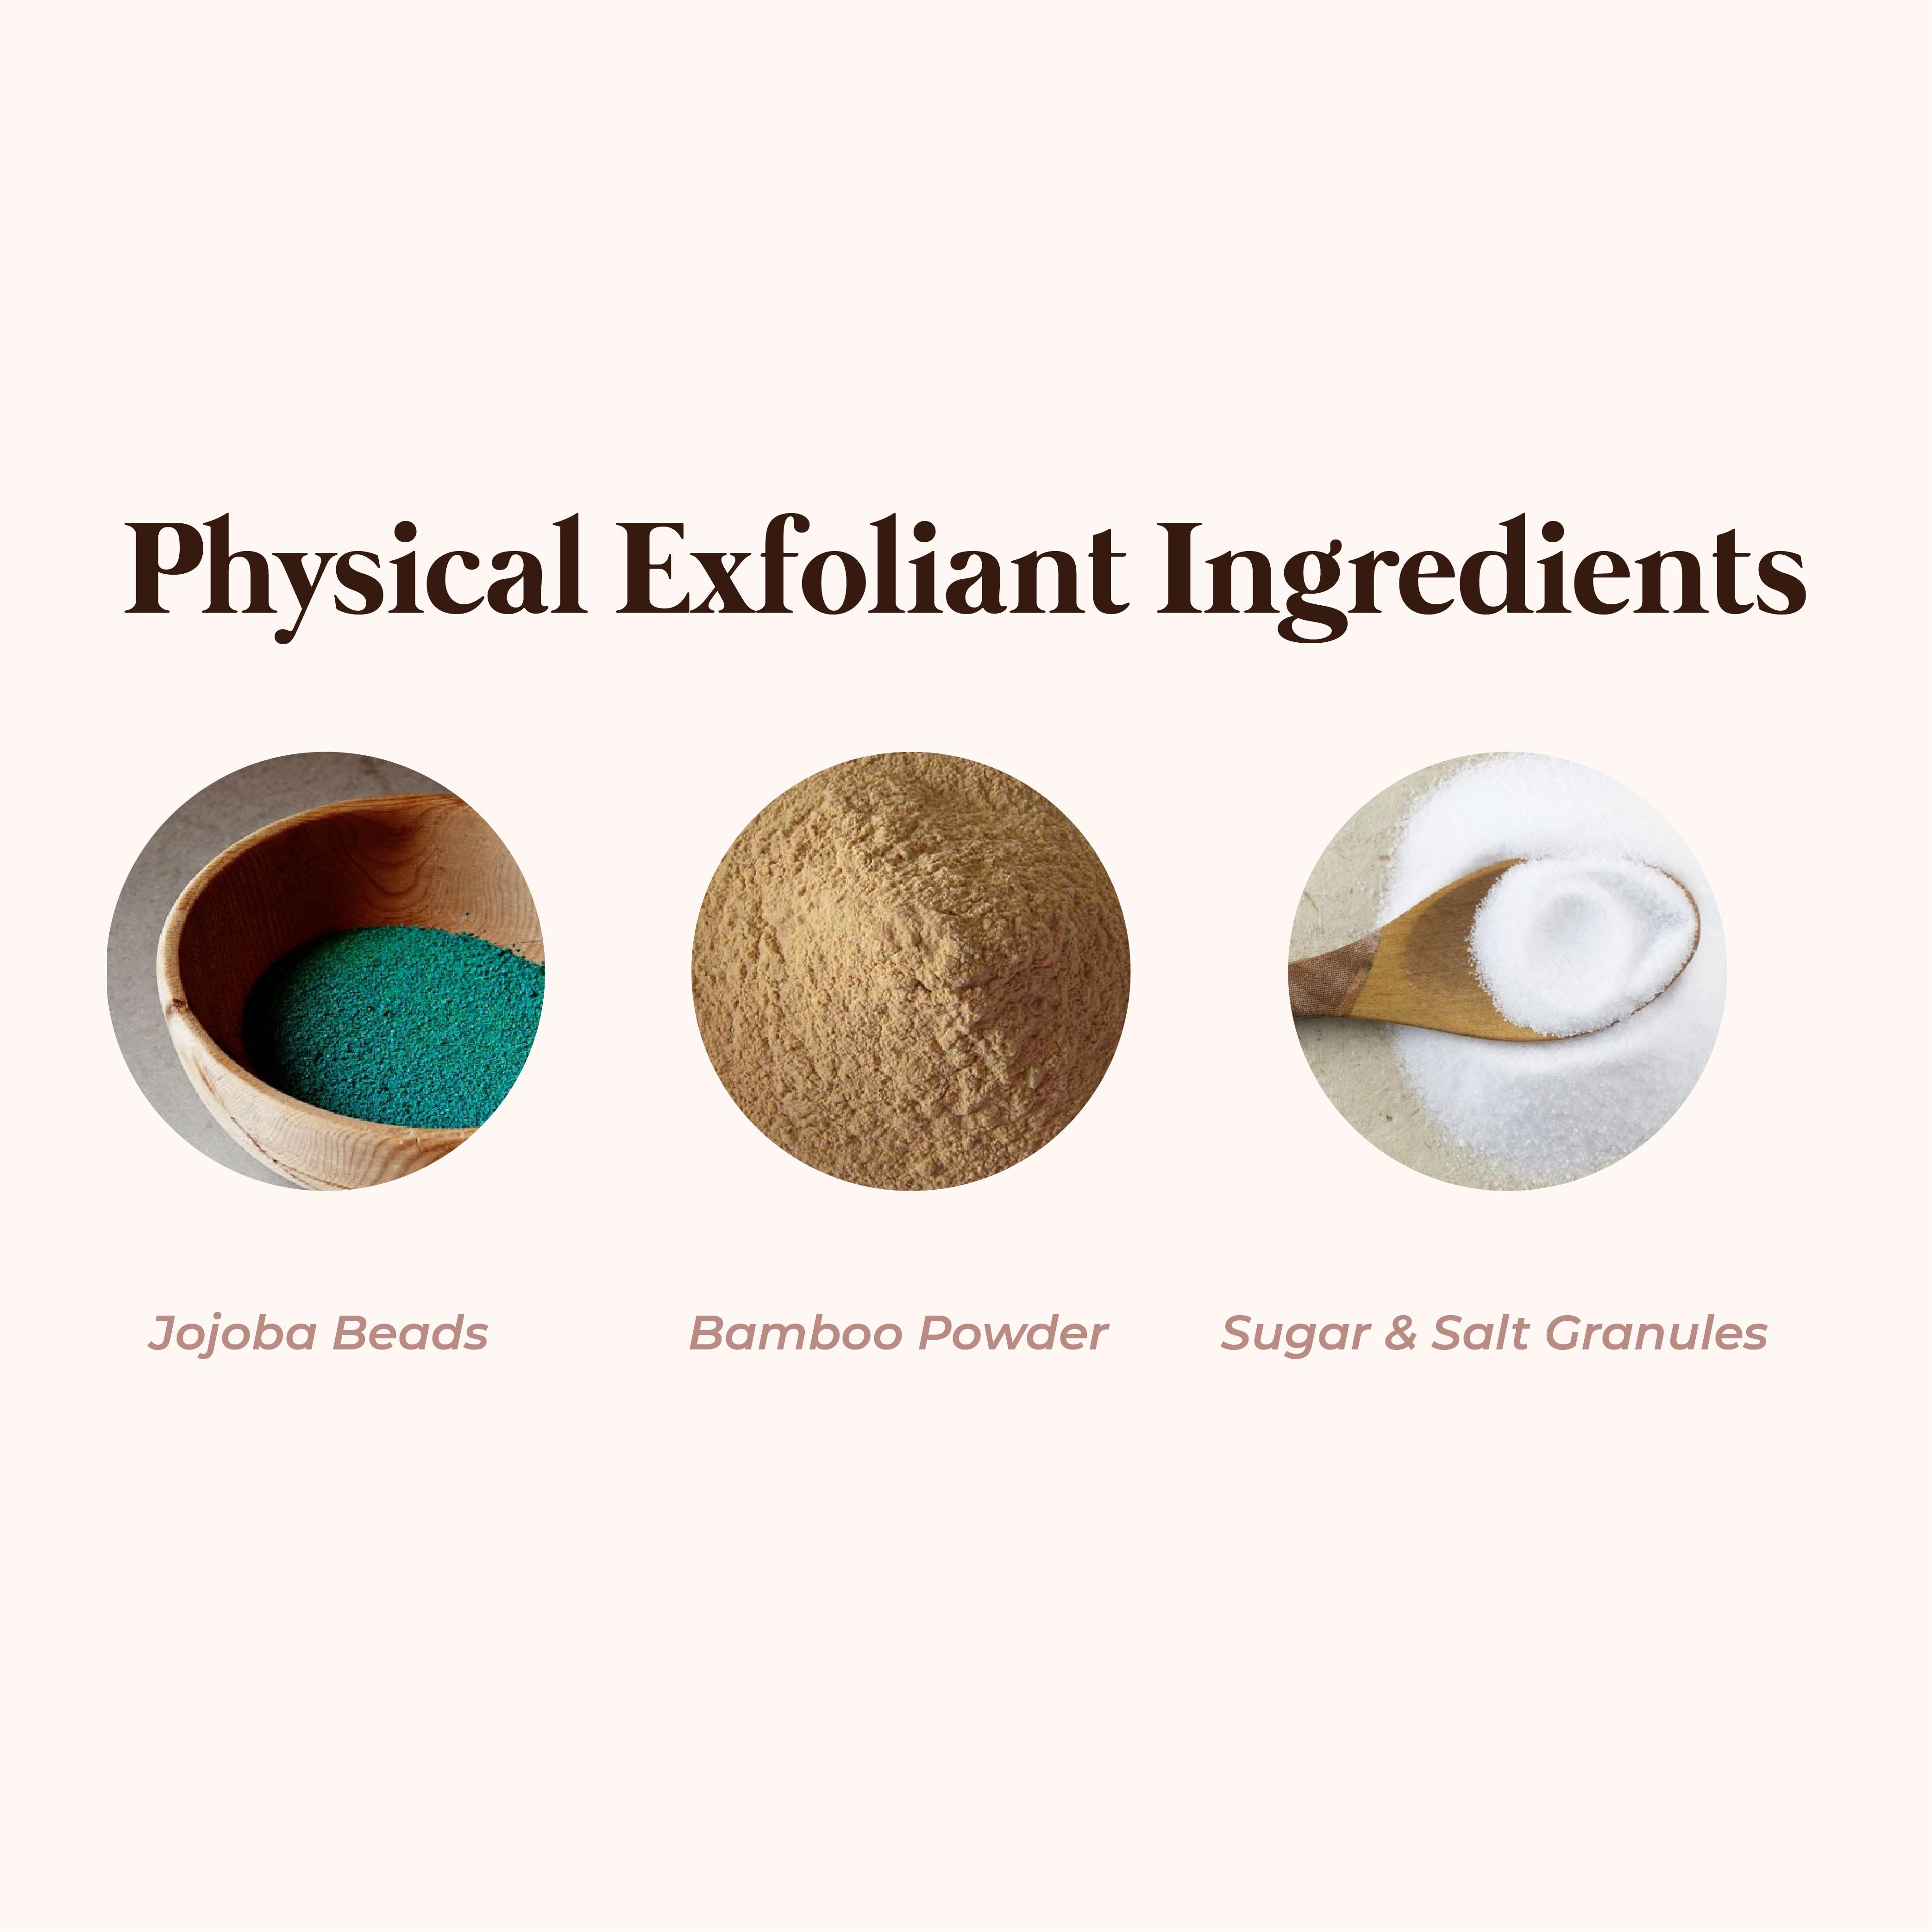 This is an image of the different physical exfoliants on www.sublimelife.in